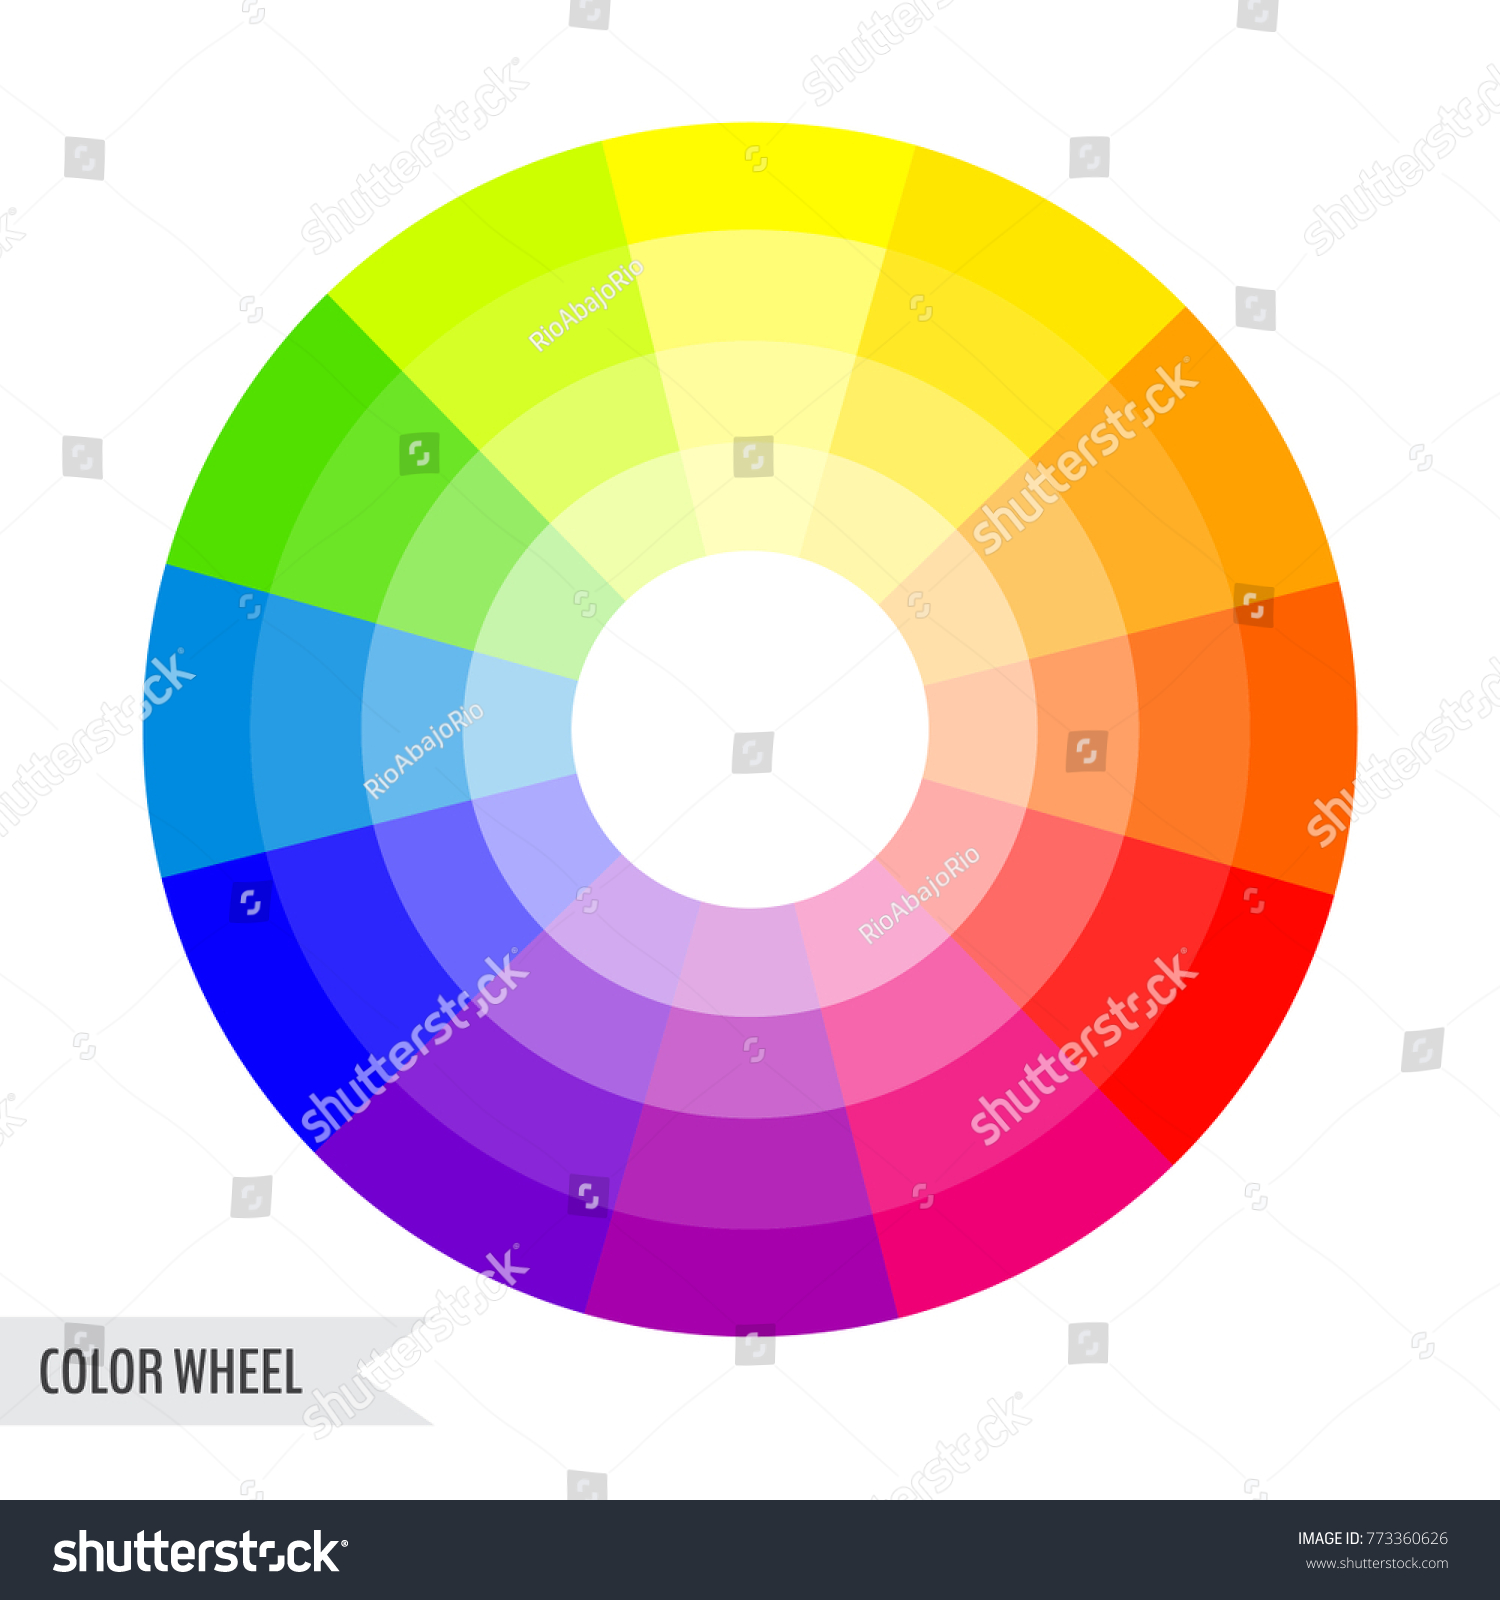 Bright color wheel chart isolated on white